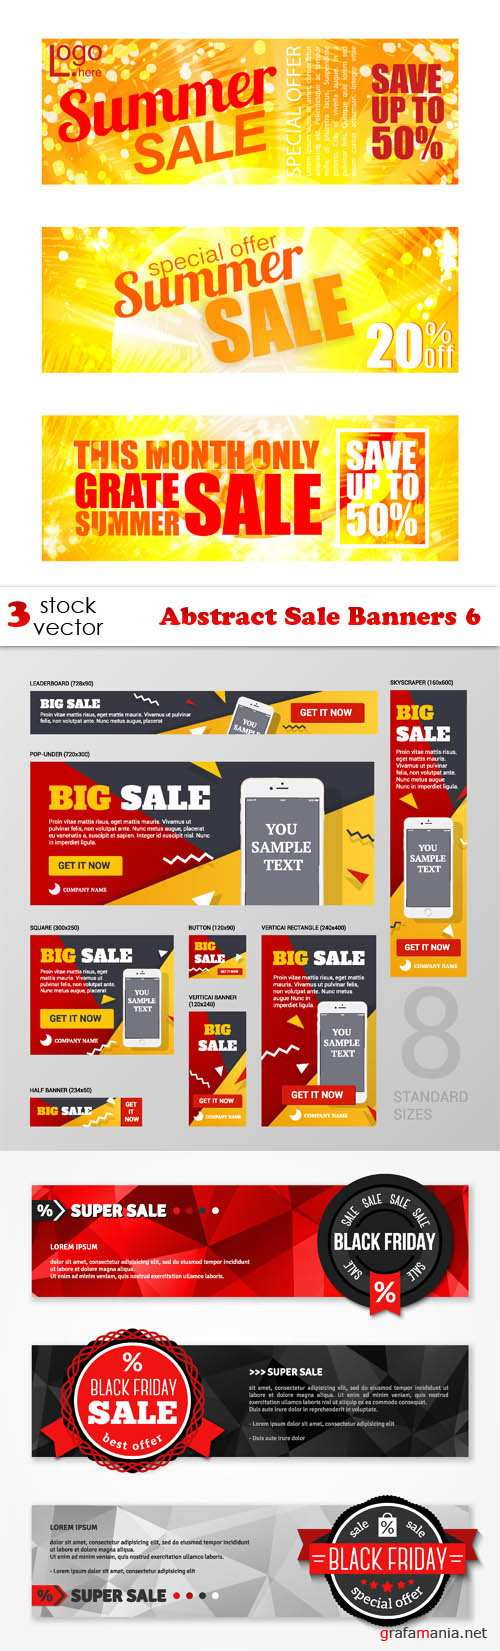 Vectors - Abstract Sale Banners 6